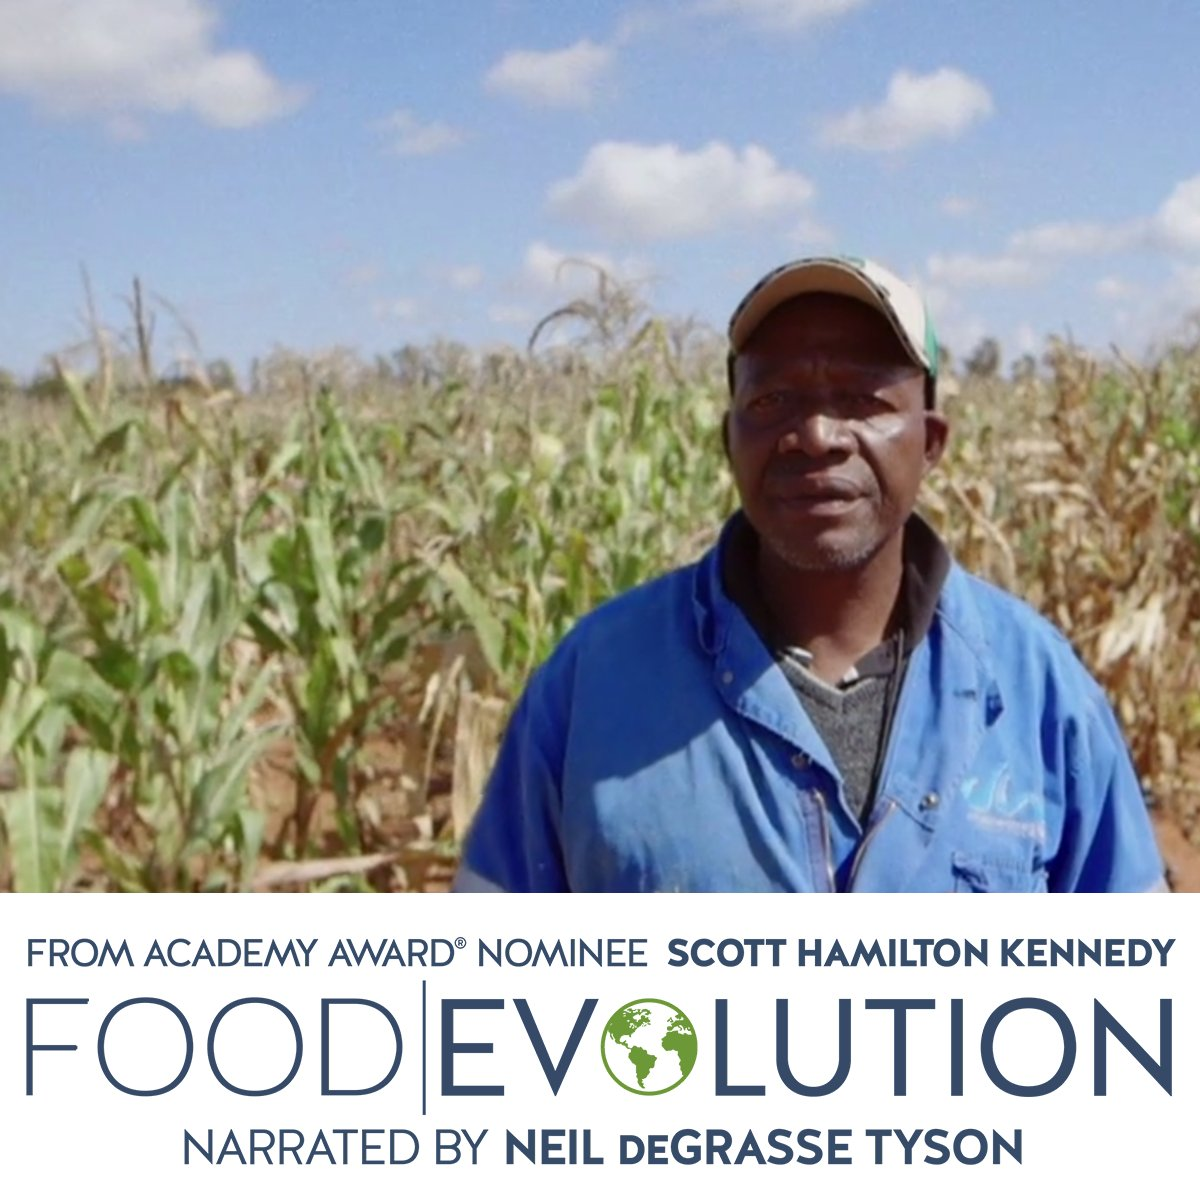 A scene from the film Food Evolution directed by Scott Hamilton Kennedy. Photo courtesy of Black Valley Films